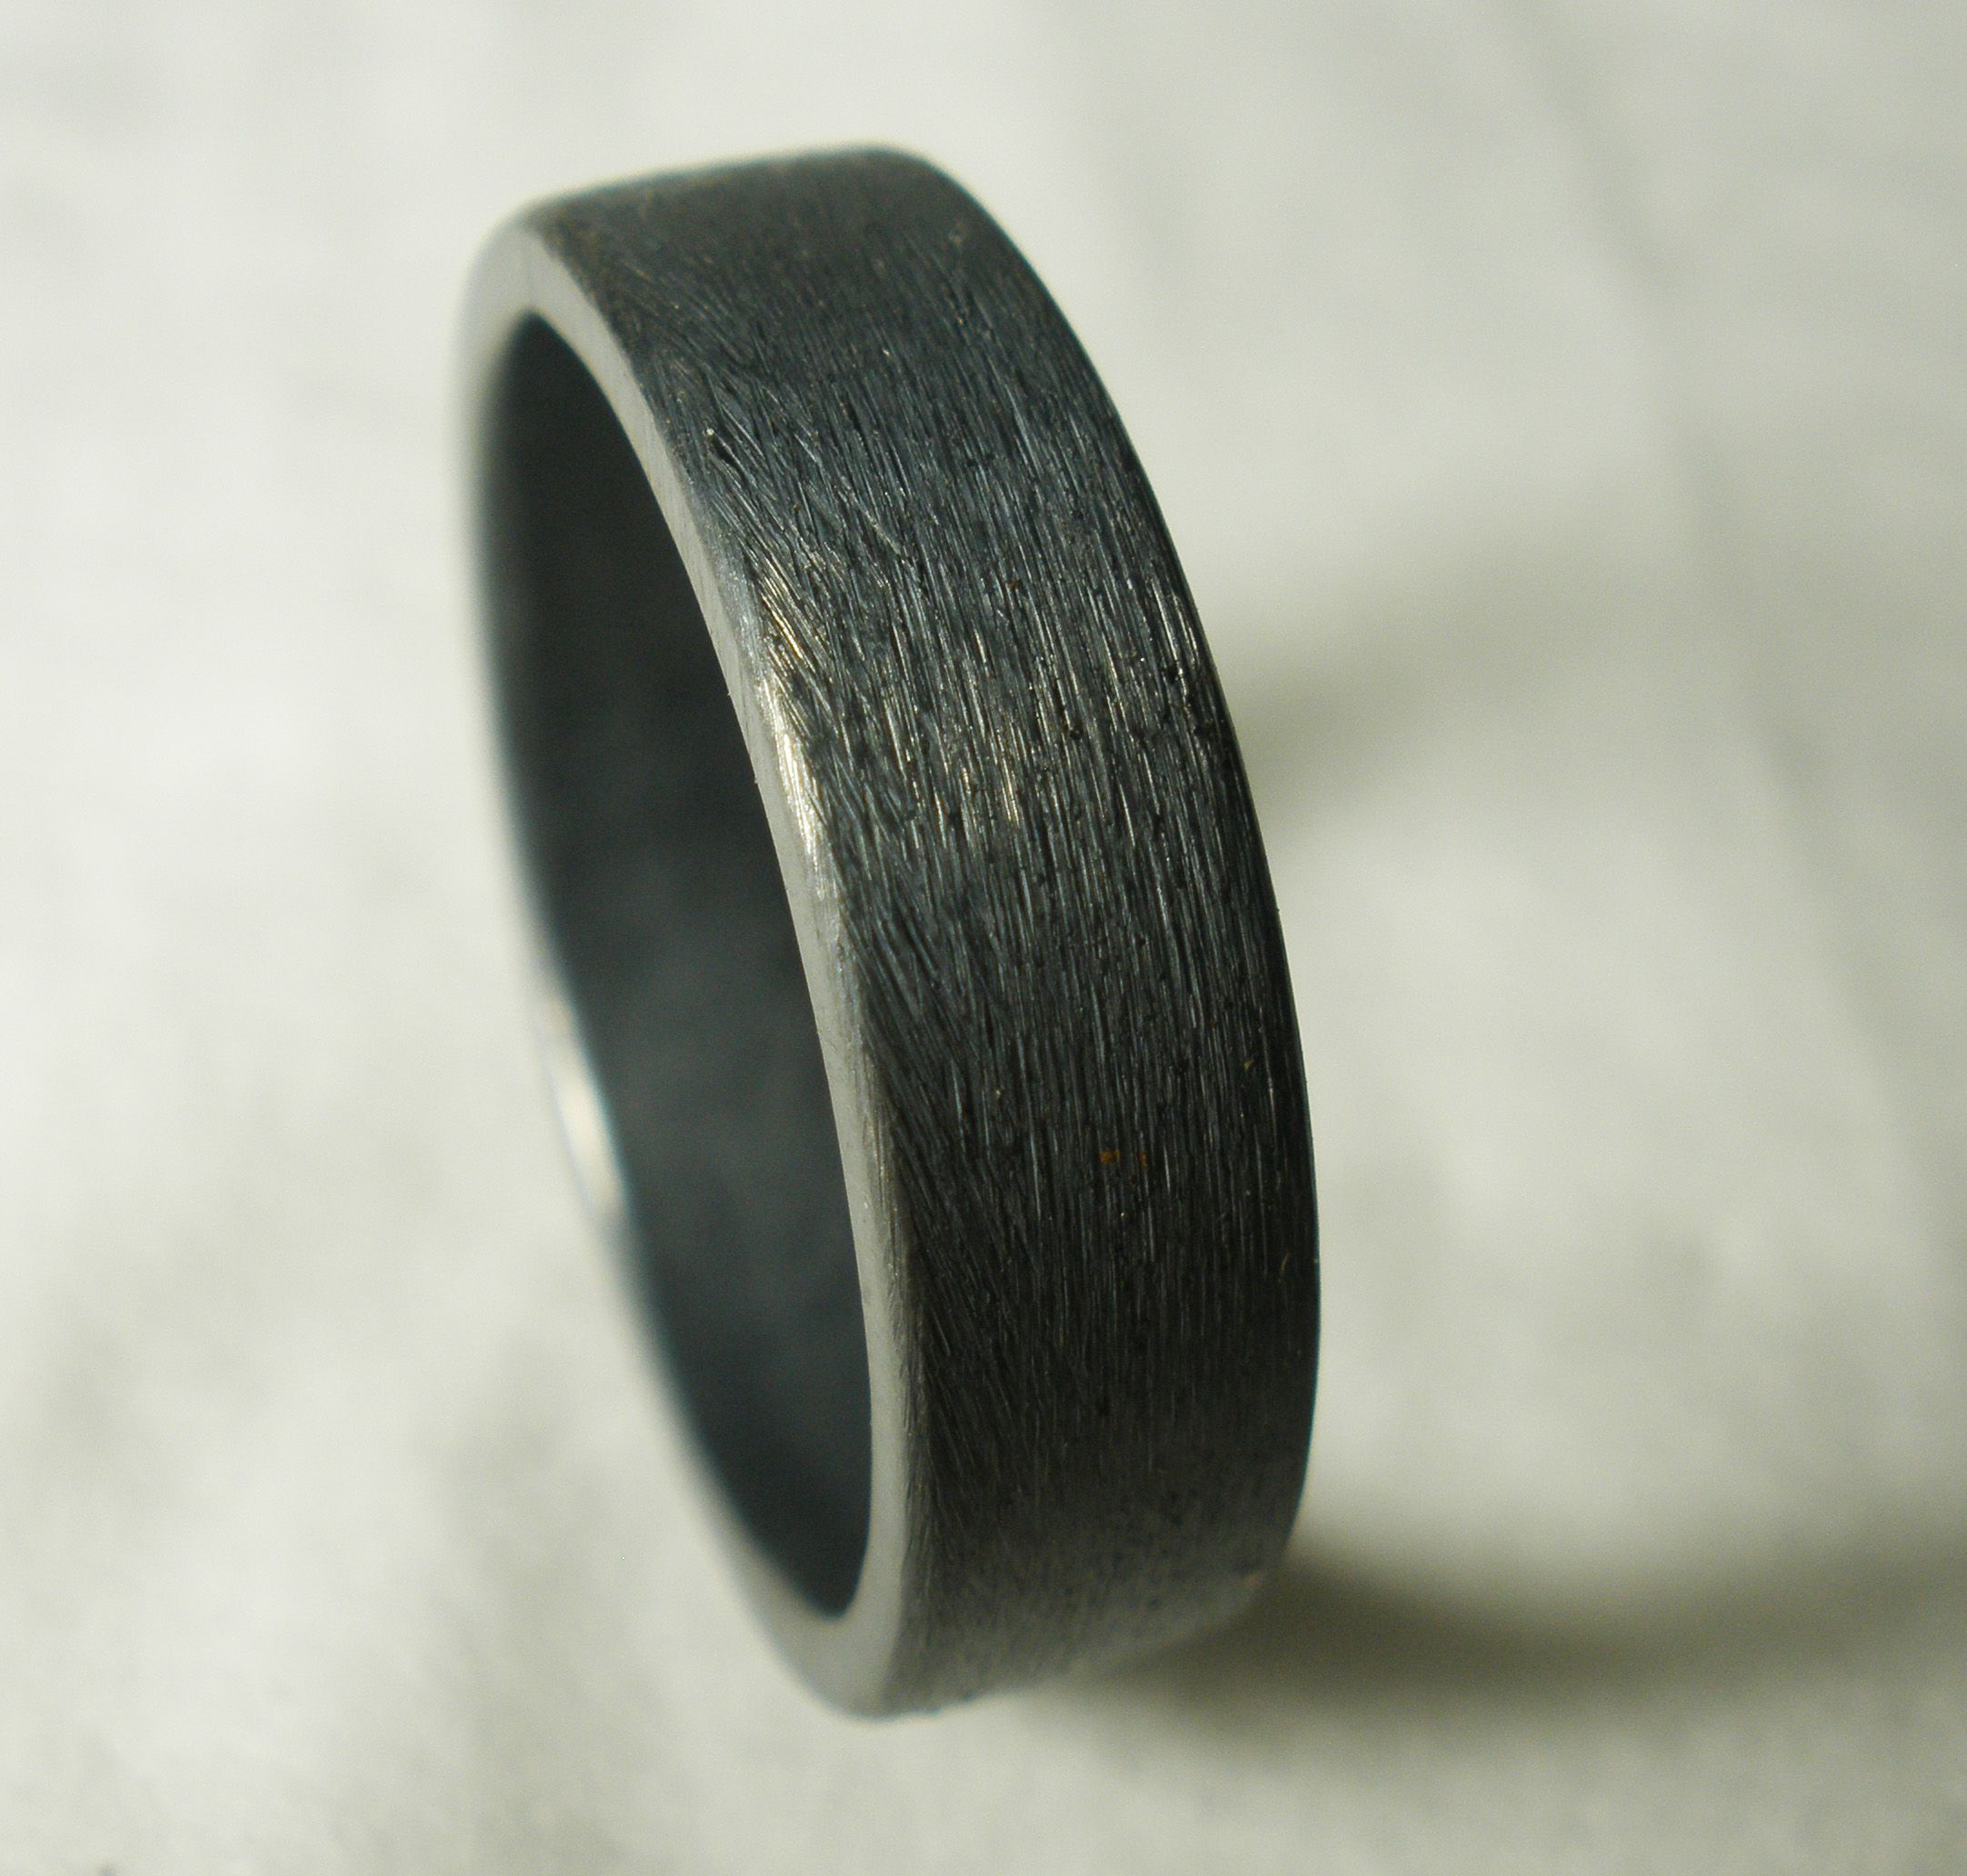 Custom Made Mens Wedding Ring Rustic Unique Simple Engagement Recycled Sterling Silver Oxidized